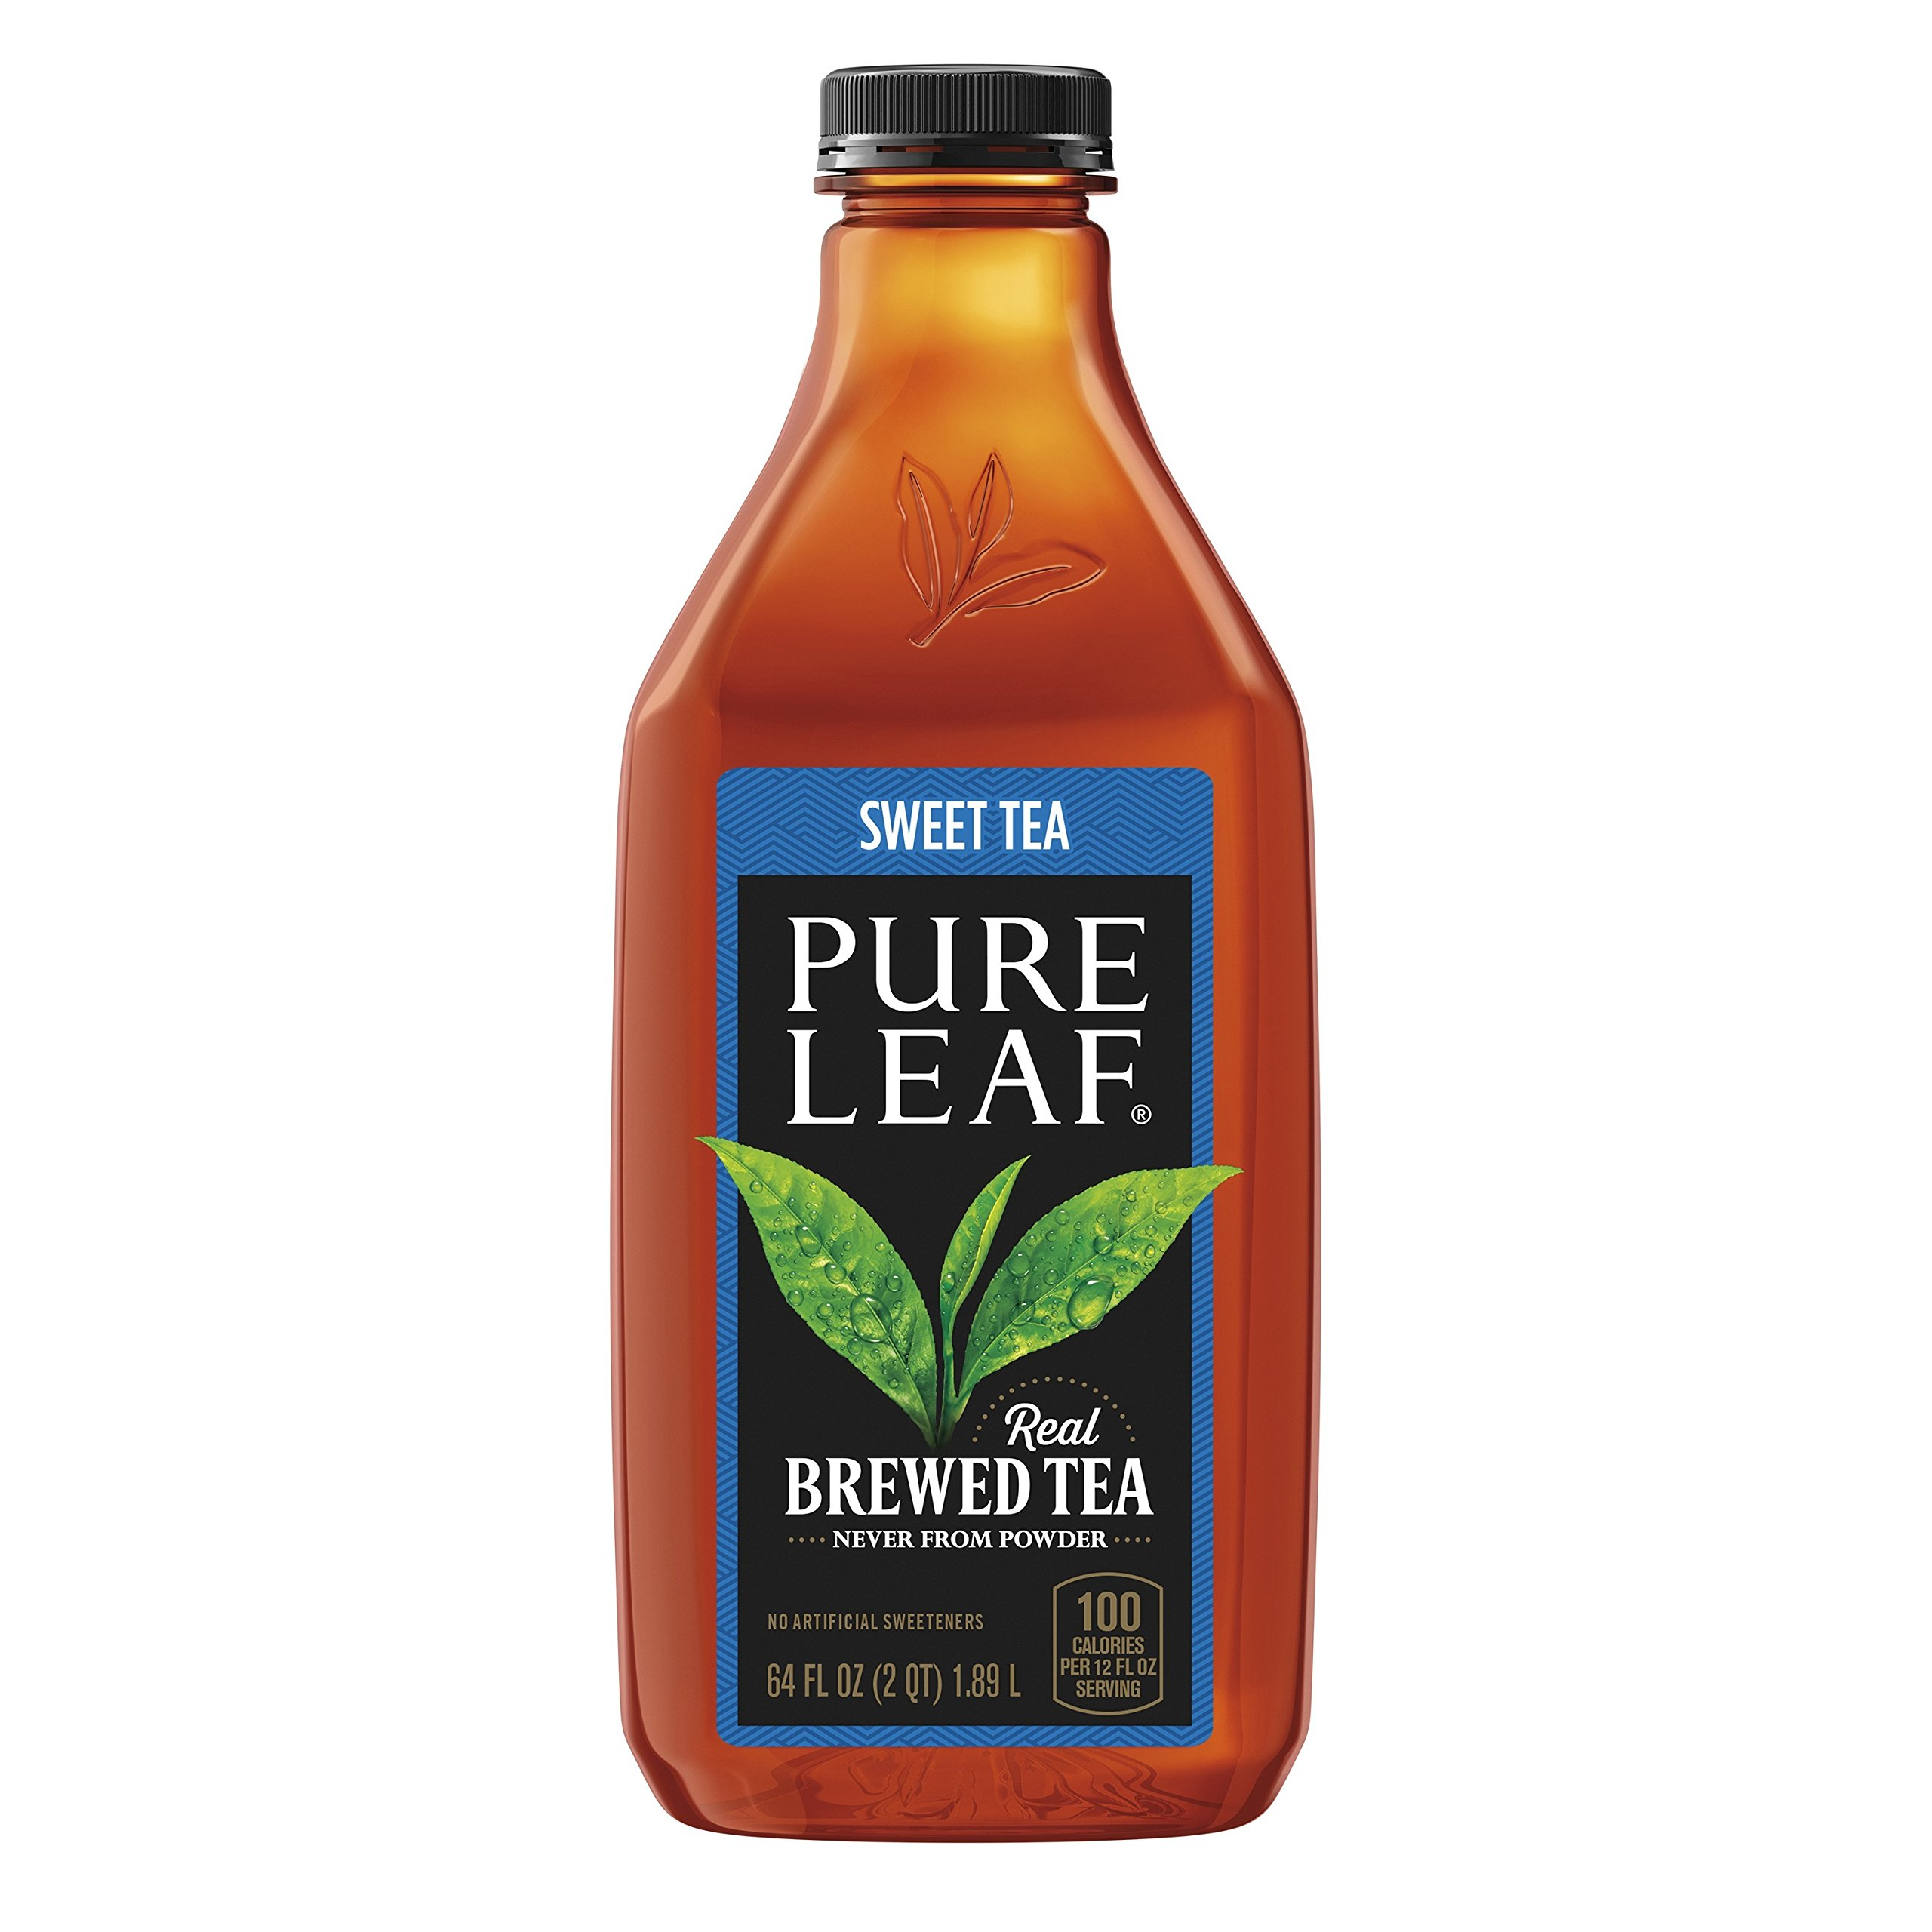 Pure Leaf Iced Tea, Sweet Tea, 64 fl oz Plastic Bottle